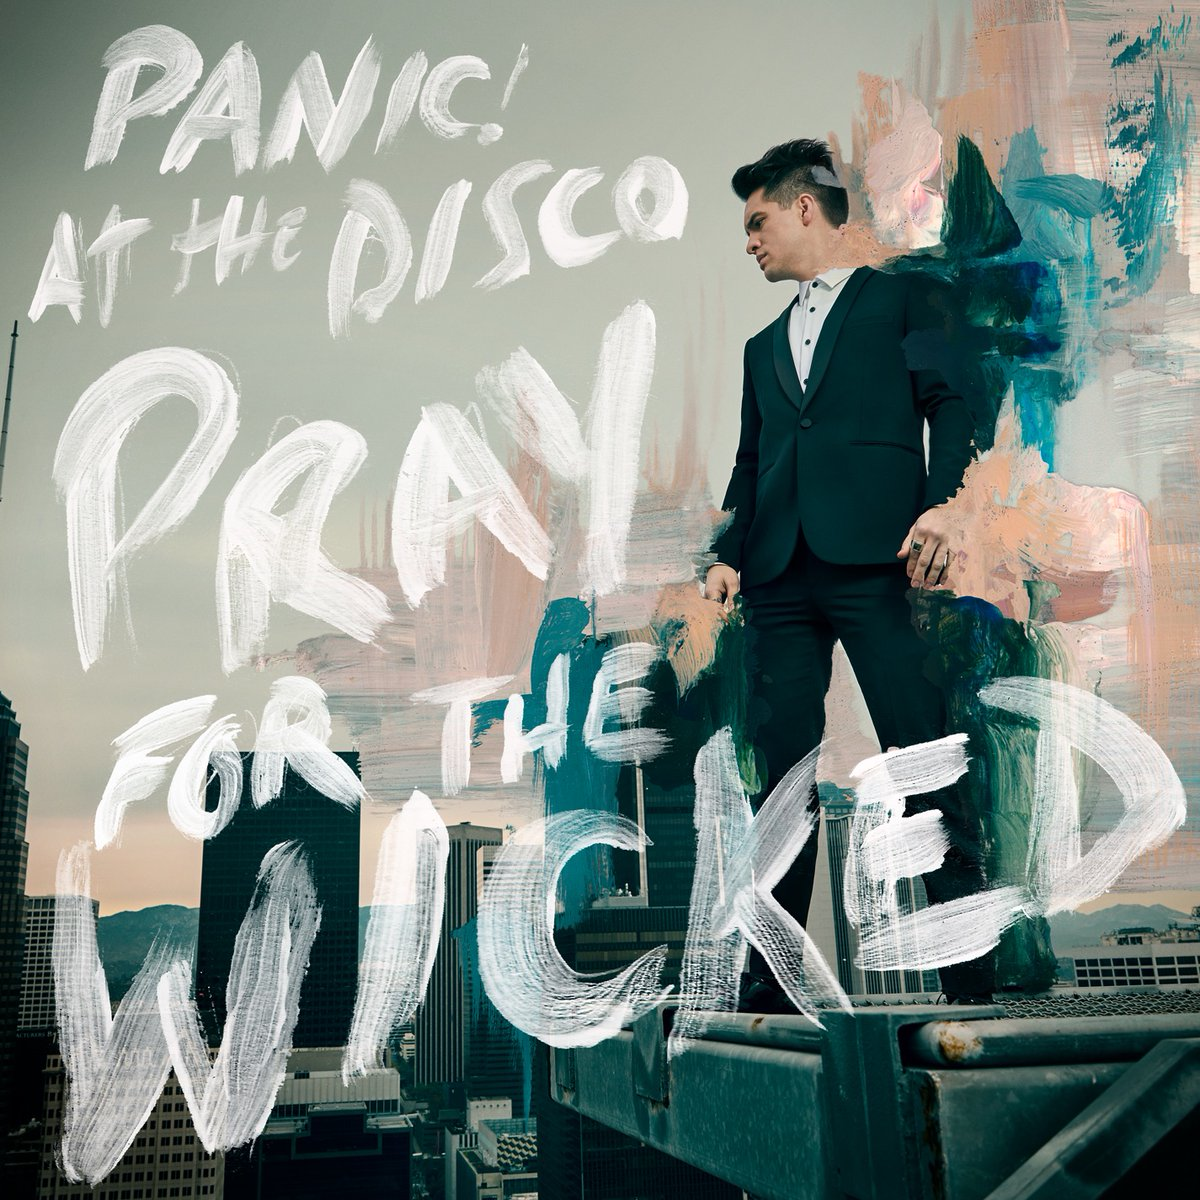 prayforthewicked.jpg